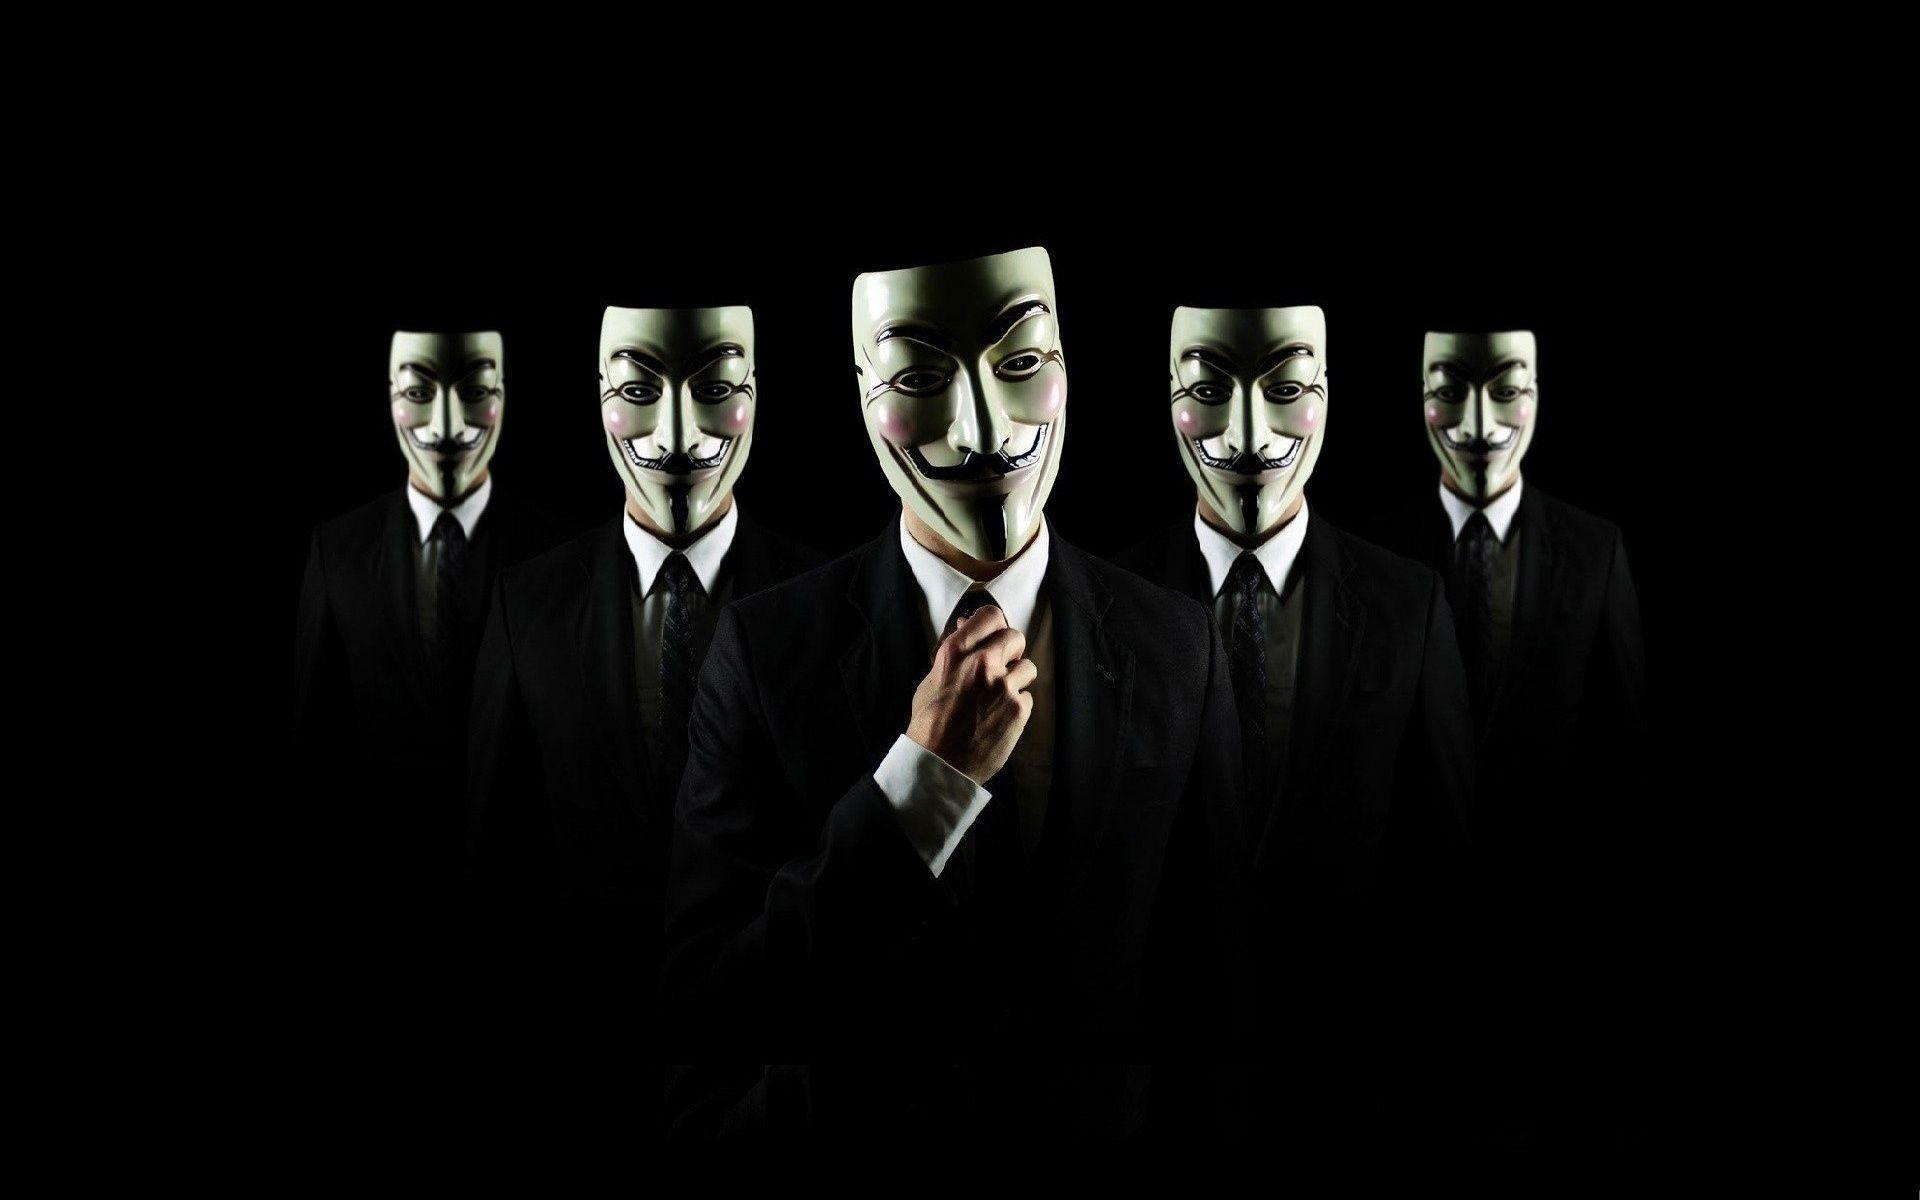 anonymous 1920x1080 wallpapers